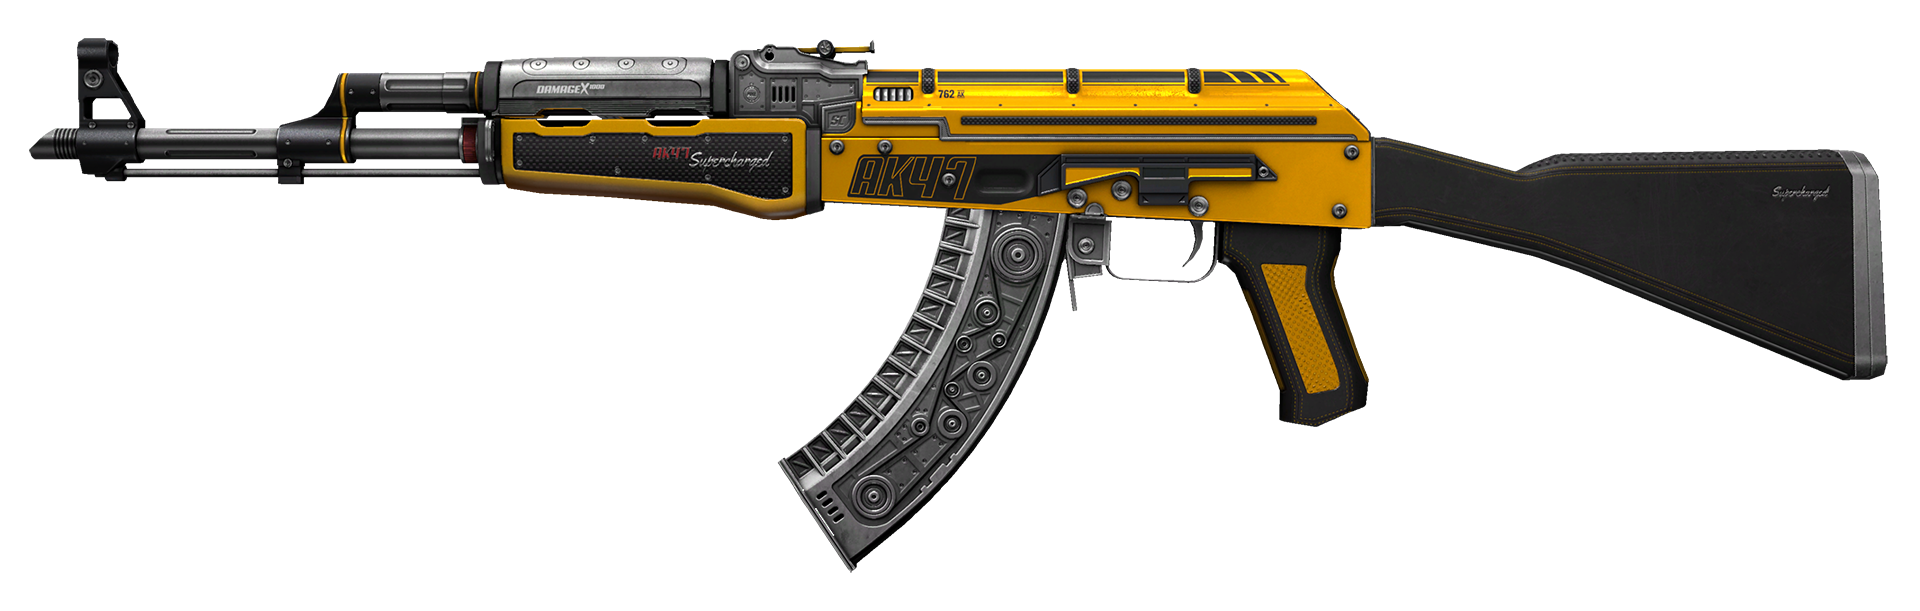 AK-47 Fuel Injector Large Rendering